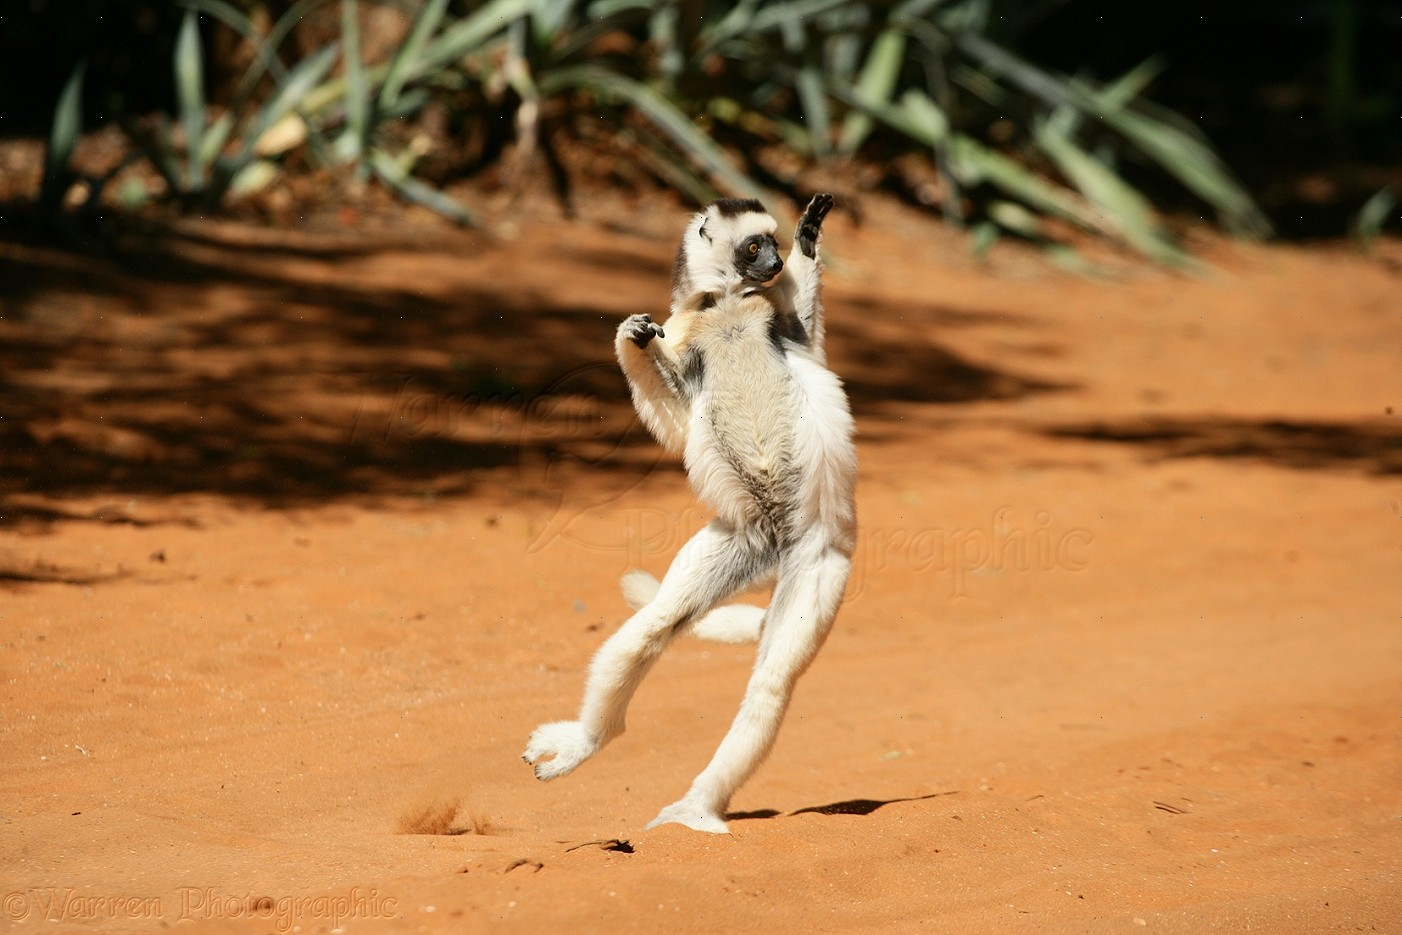 ... verreauxi ) bounding on hind legs to cross open ground. Madagascar